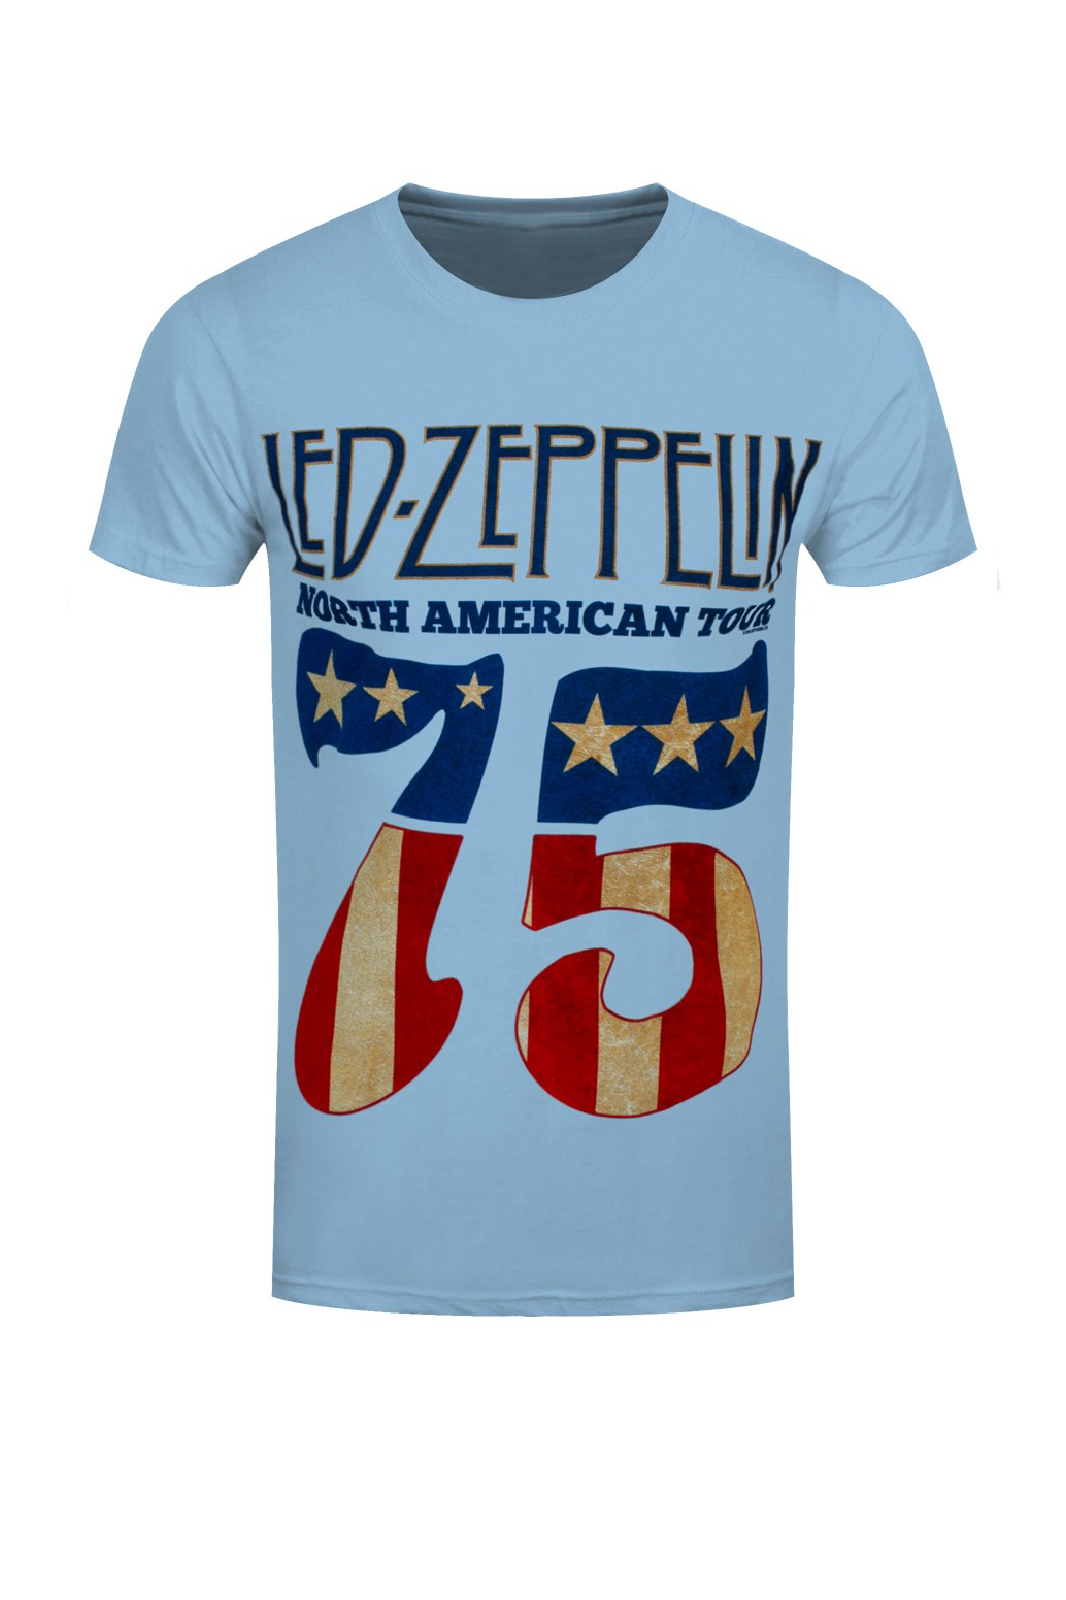 Tee Led Zeppelin 1975 North American Tour Blue